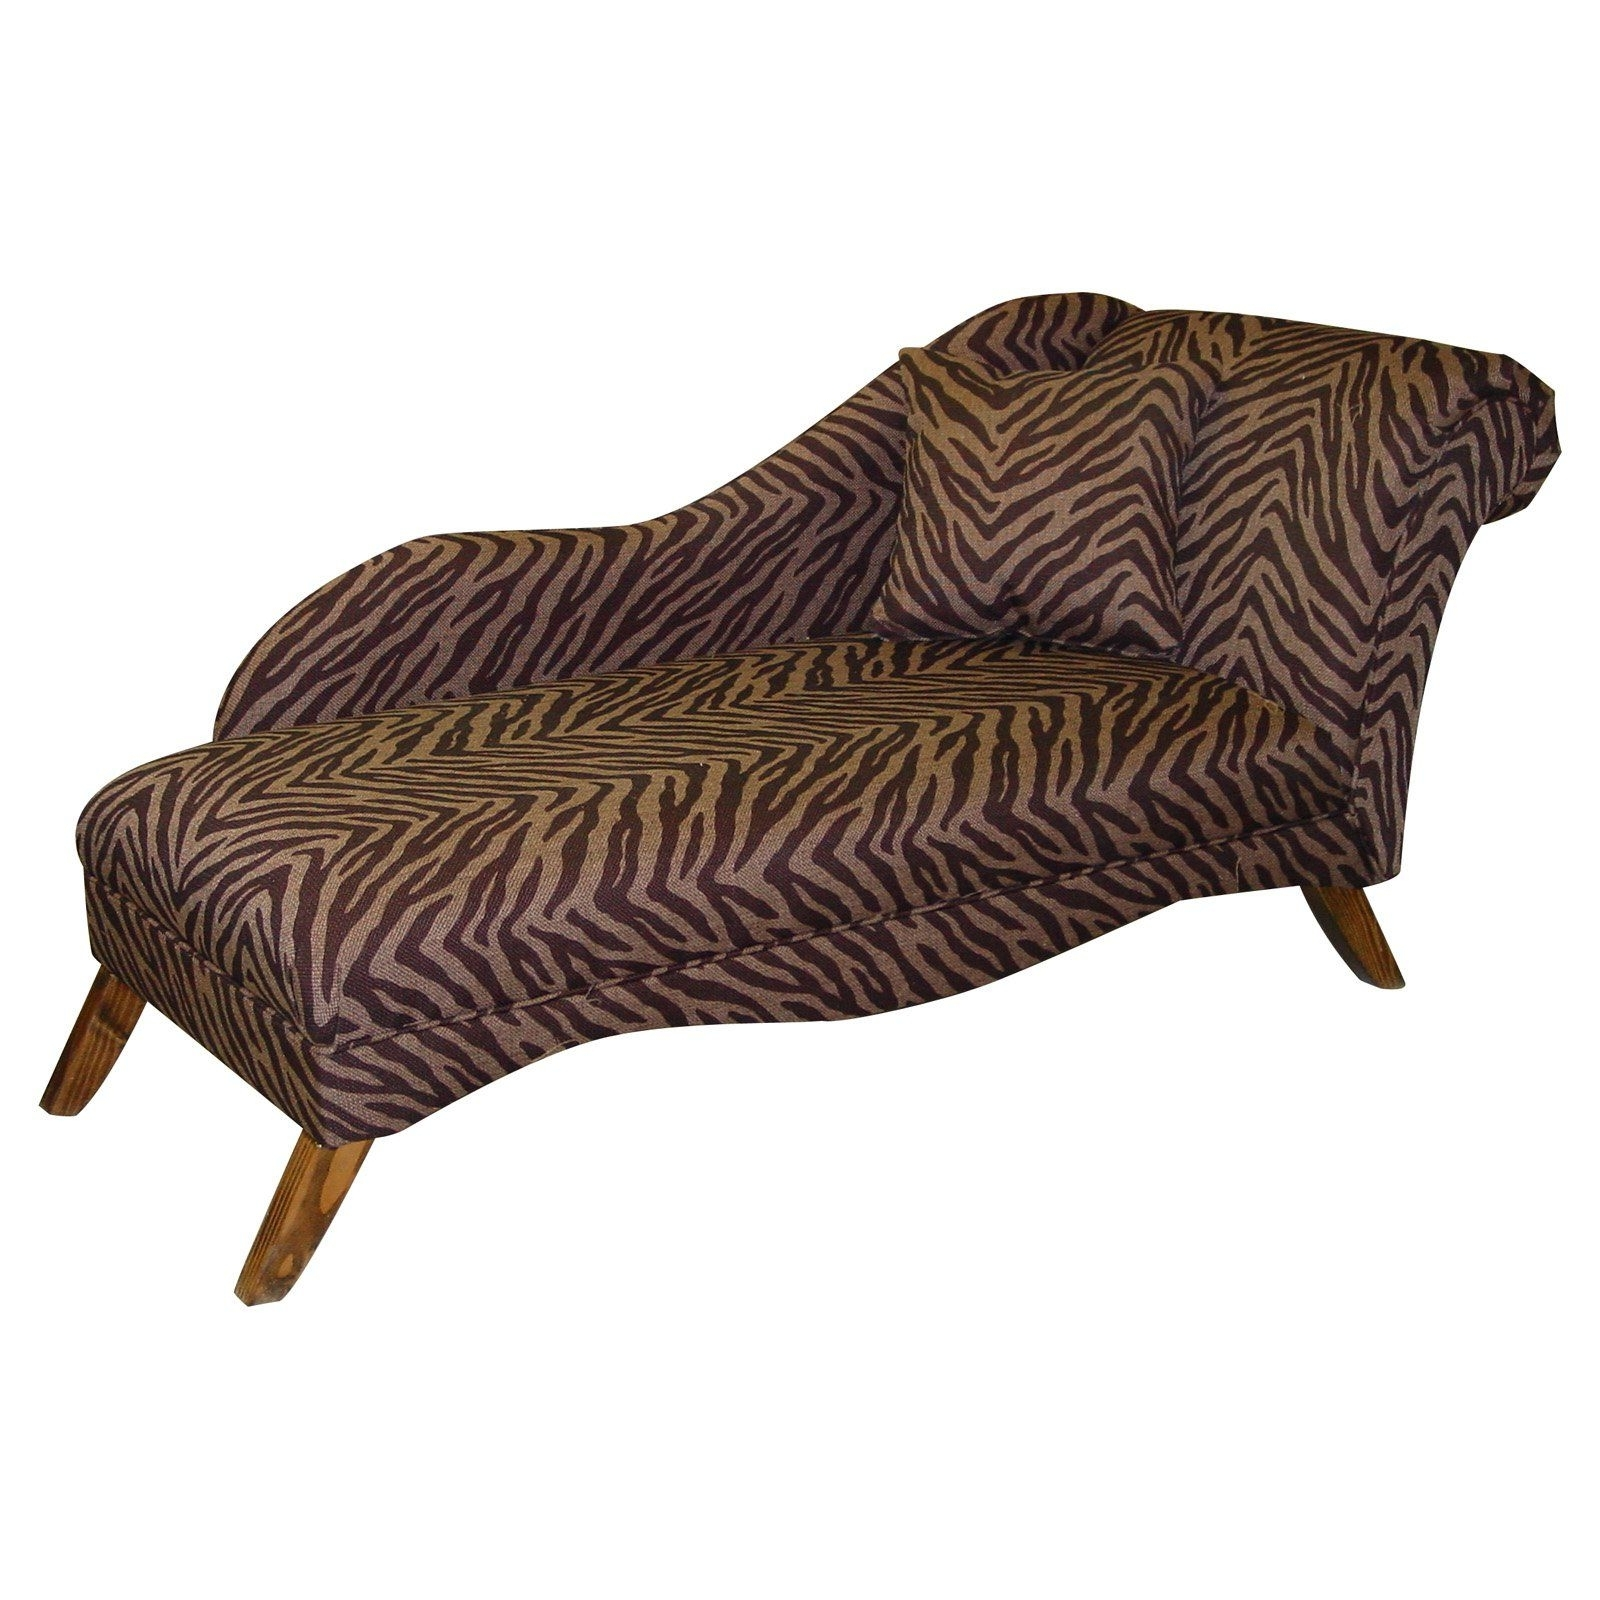 Unbelievable Leopard Chaise Lounge With Image For Animal Print With Regard To Preferred Leopard Chaises (View 14 of 15)